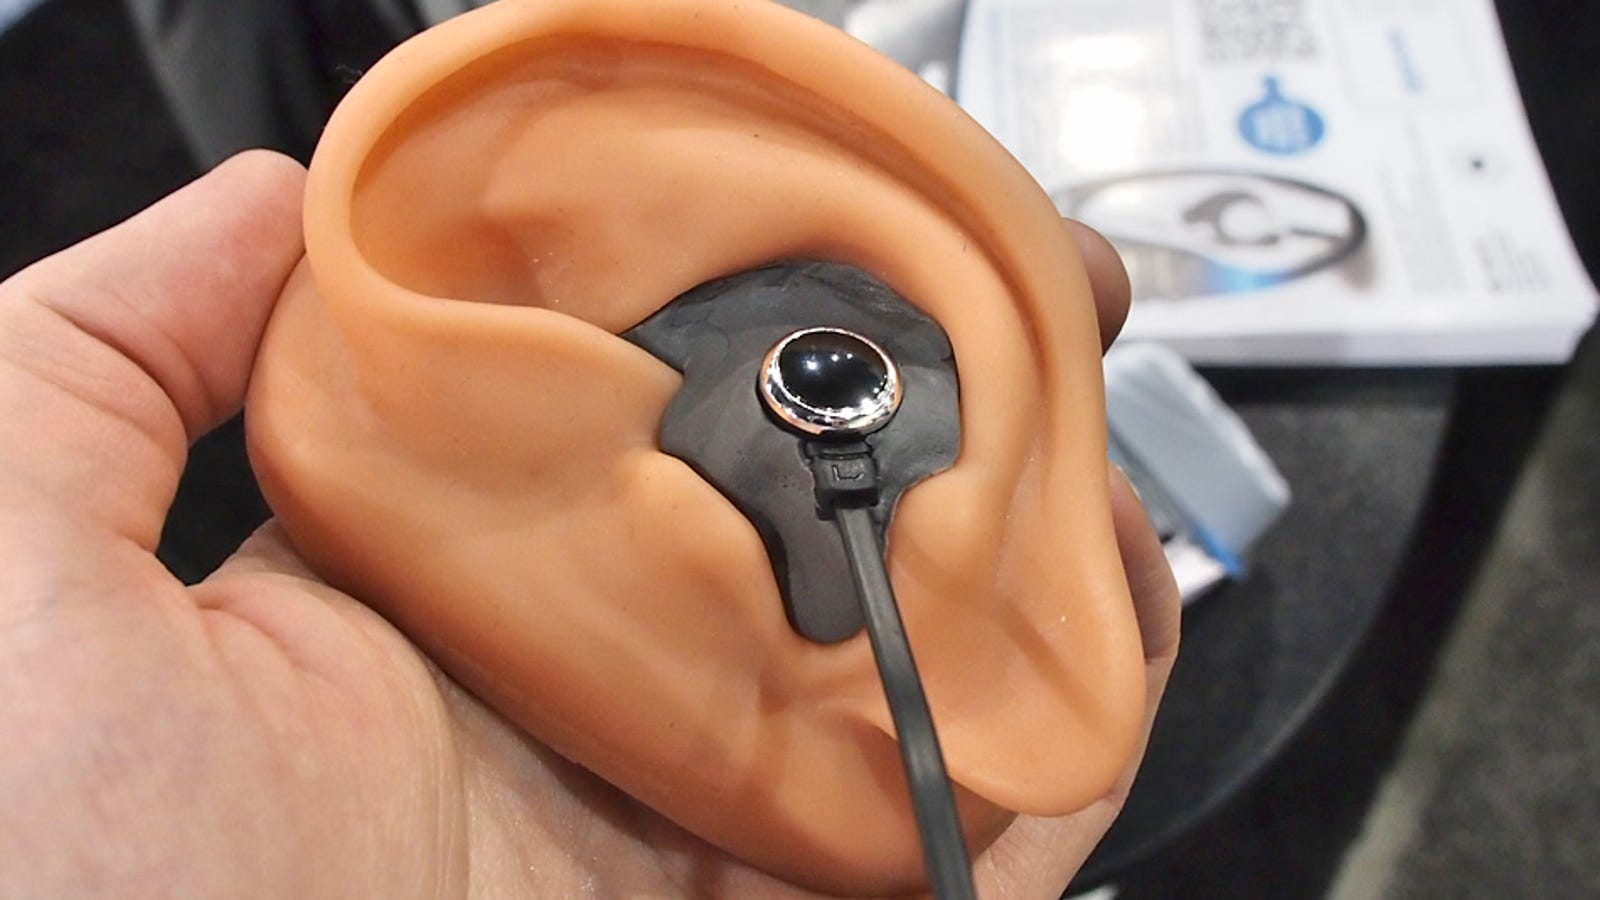 gaming earbuds mic mute - Sharkfin Promises Custom-Fitted Earbuds For Just $5